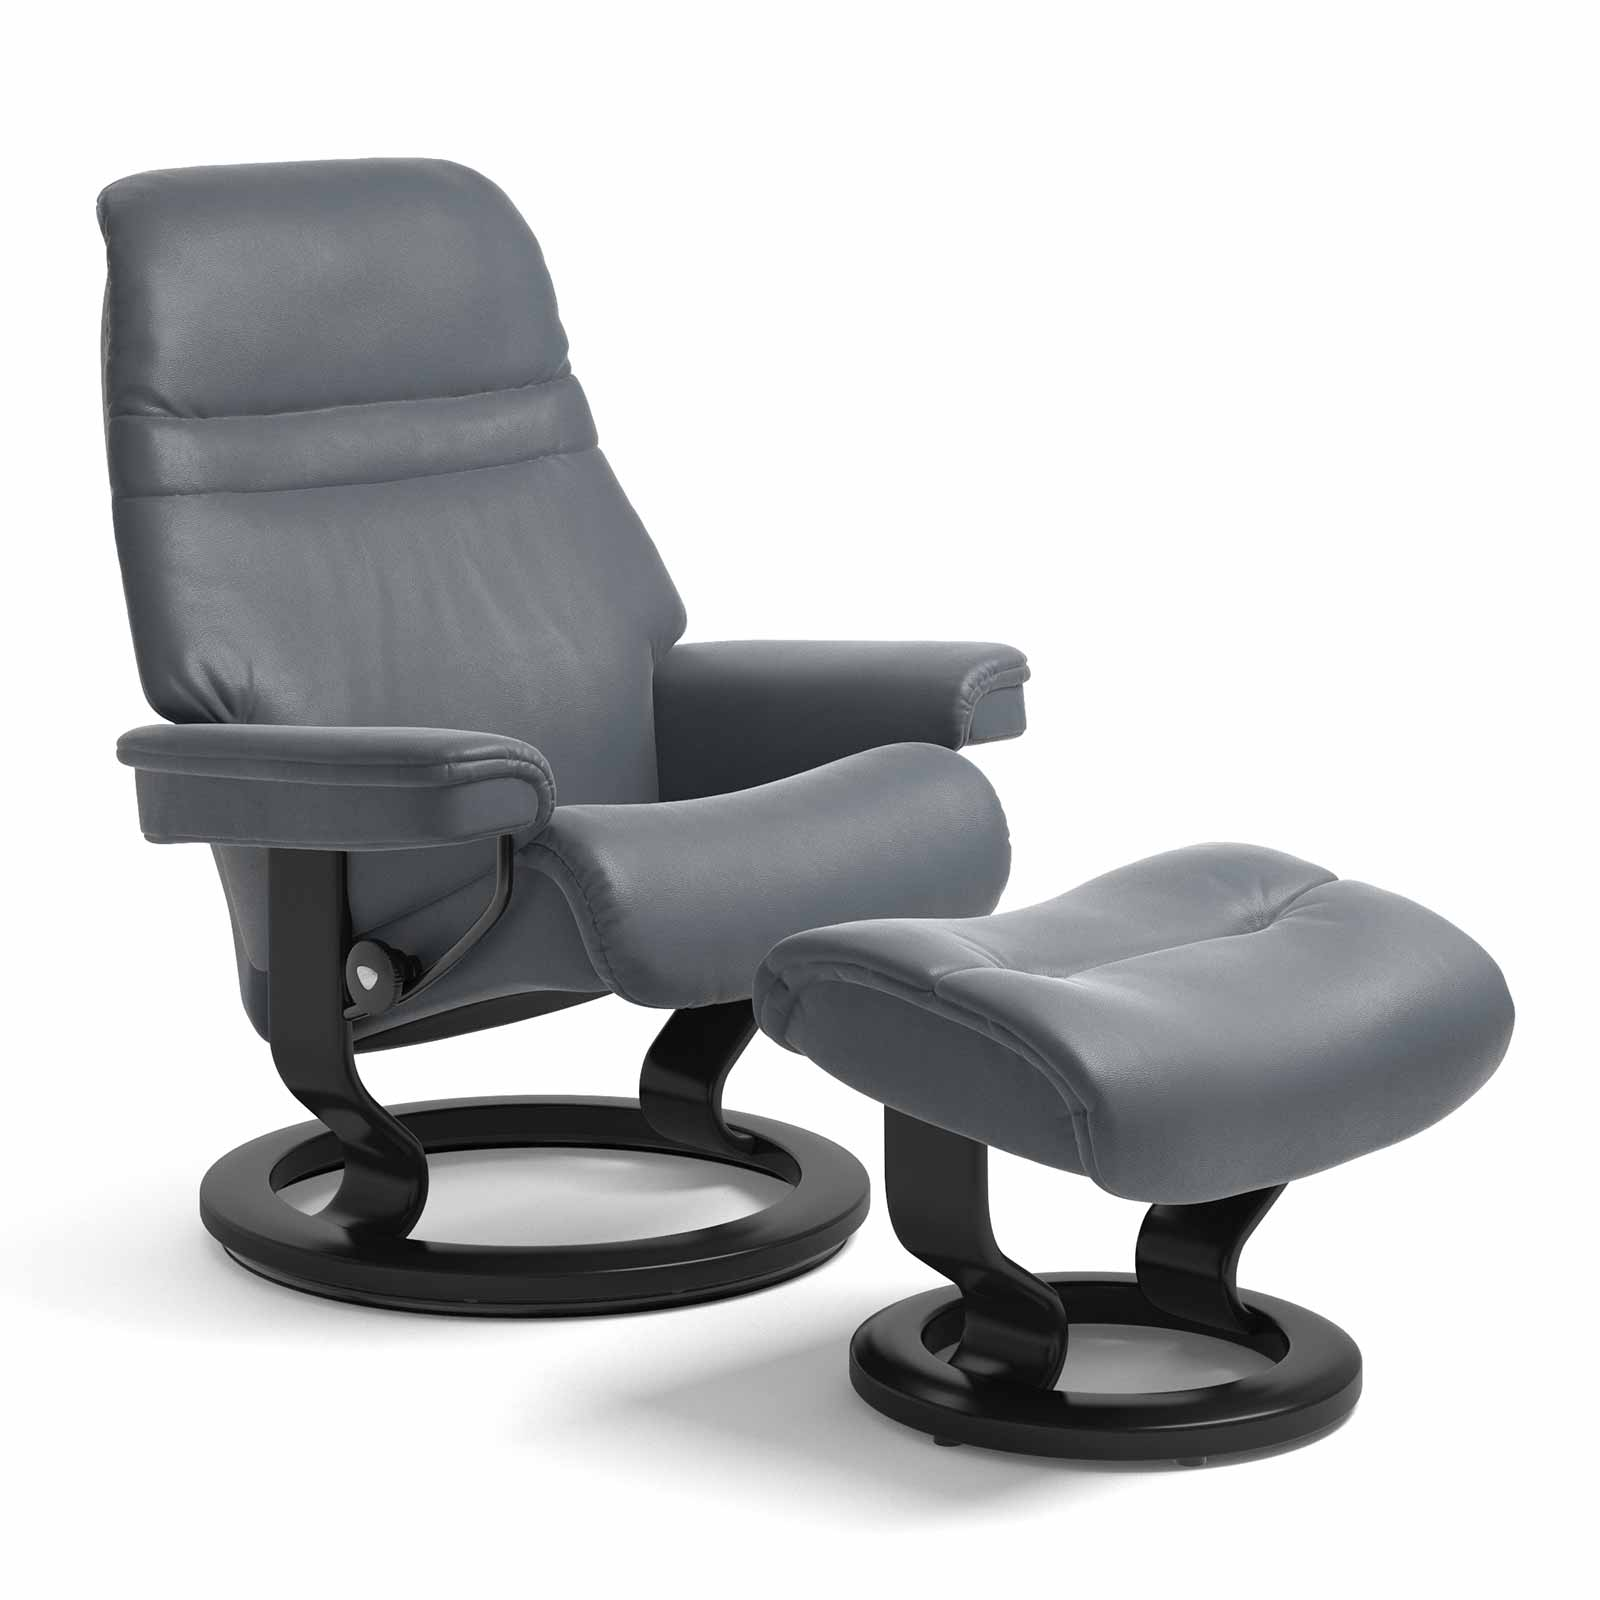 Stressless Sessel Sunrise.html Stressless Sessel Sunrise Classic Leder Batick Atlantic Blue Mit Hocker